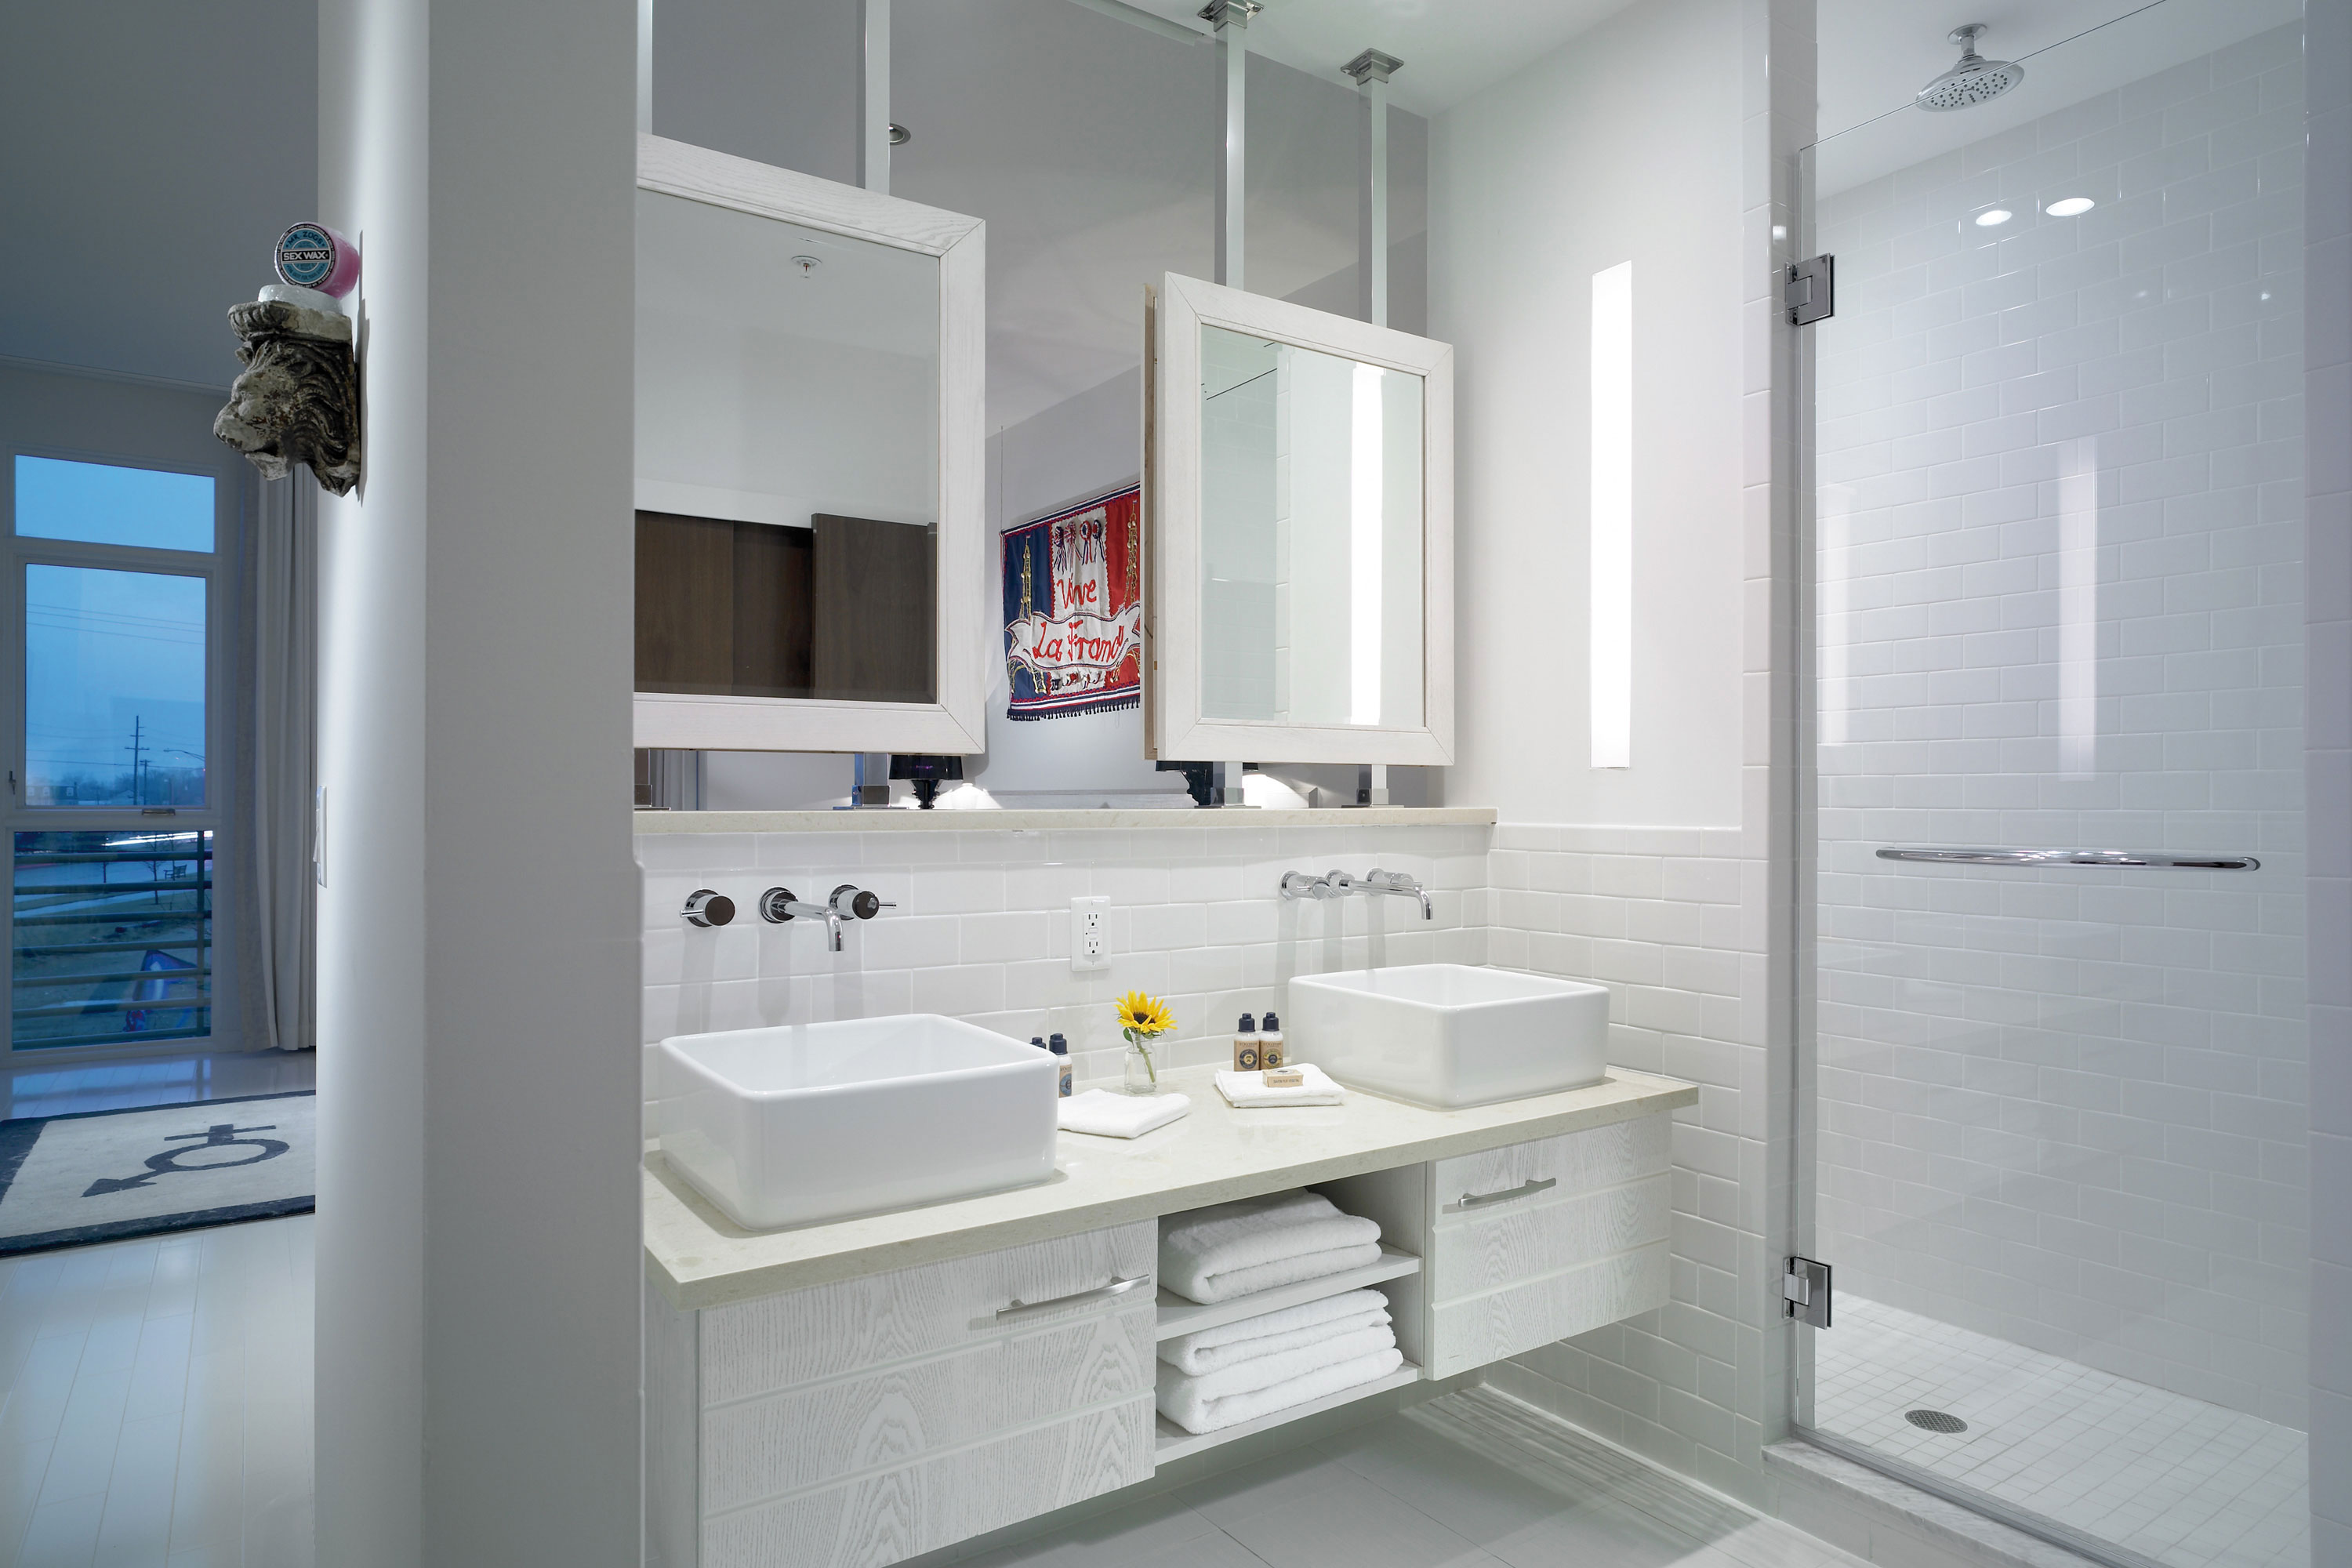 Hotel Bathroom Sink : bungalow hotel is a boutique luxury lifestyle hotel located on pier ...